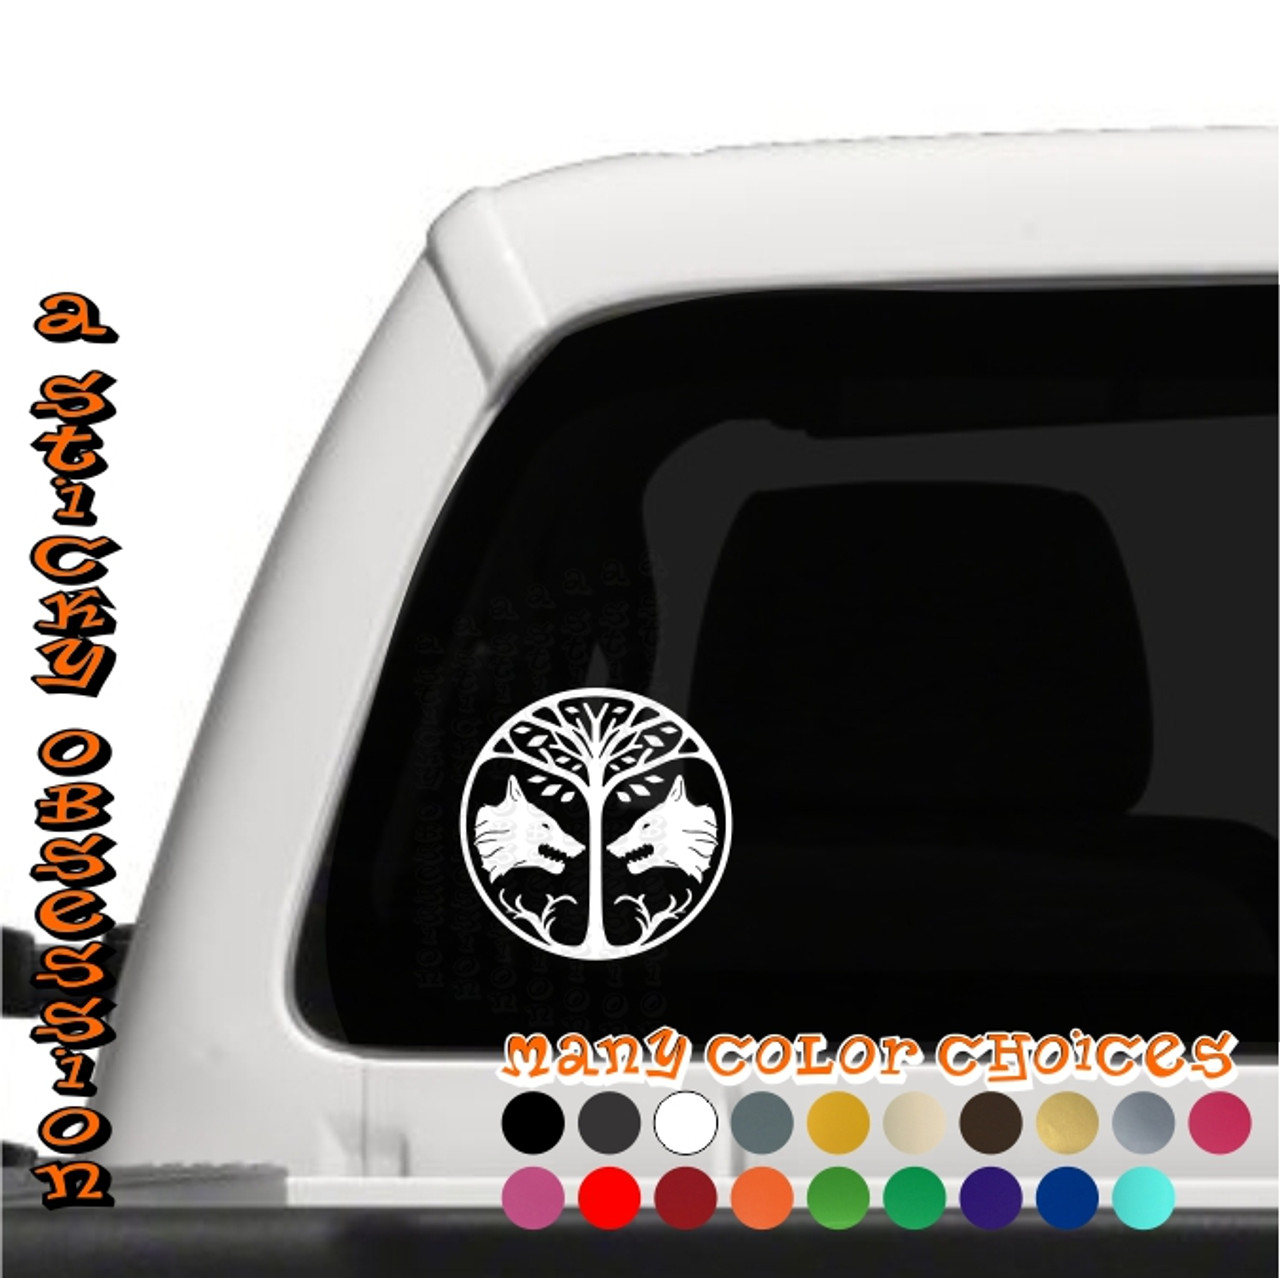 Destiny iron banner white decal on truck